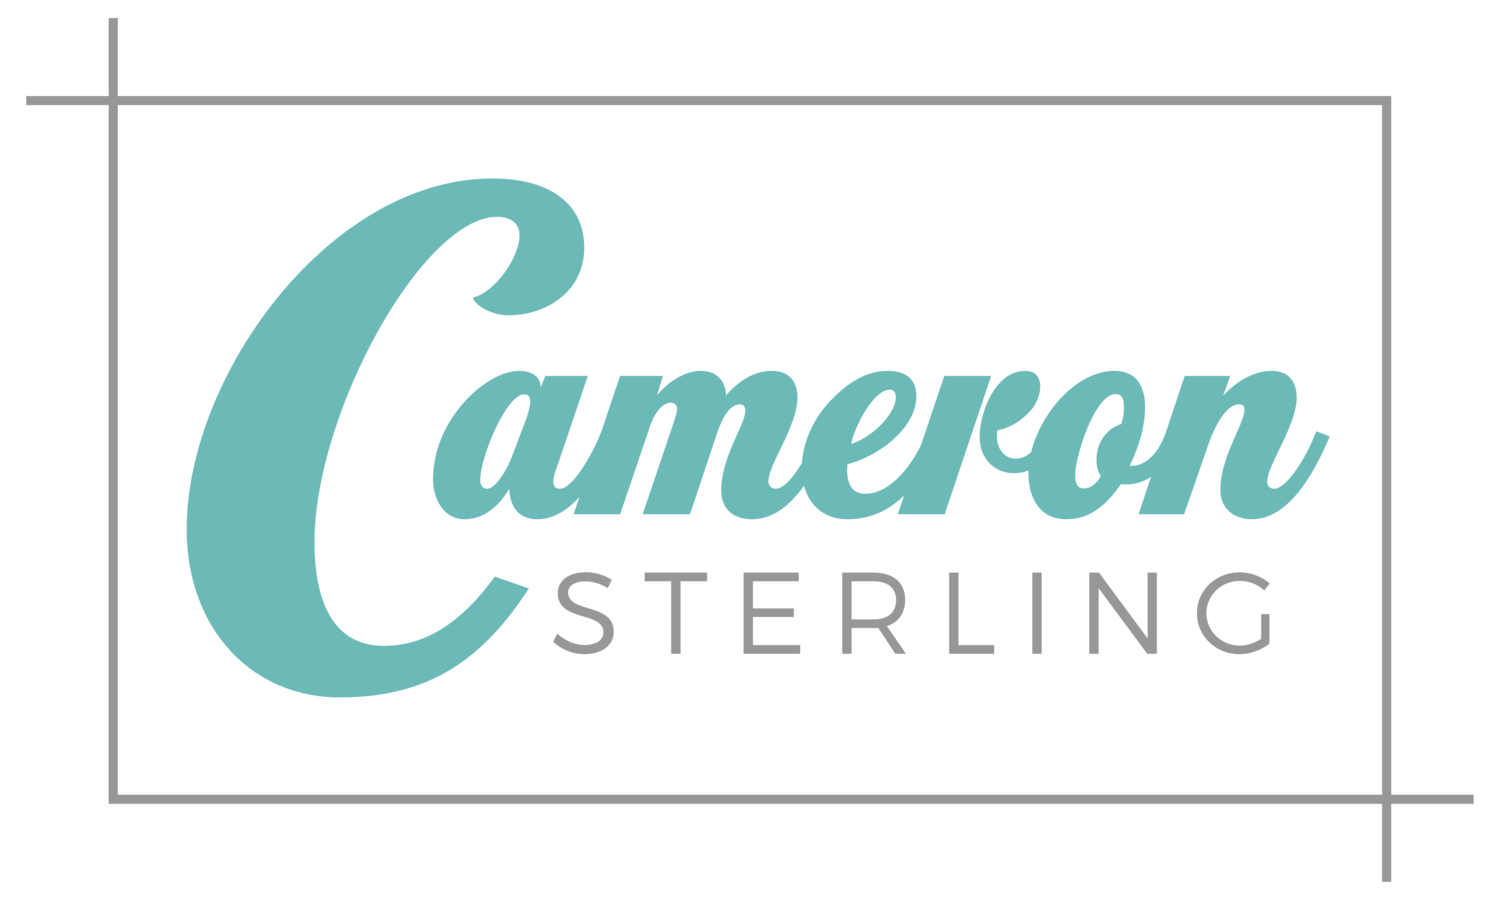 CAMERON STERLING